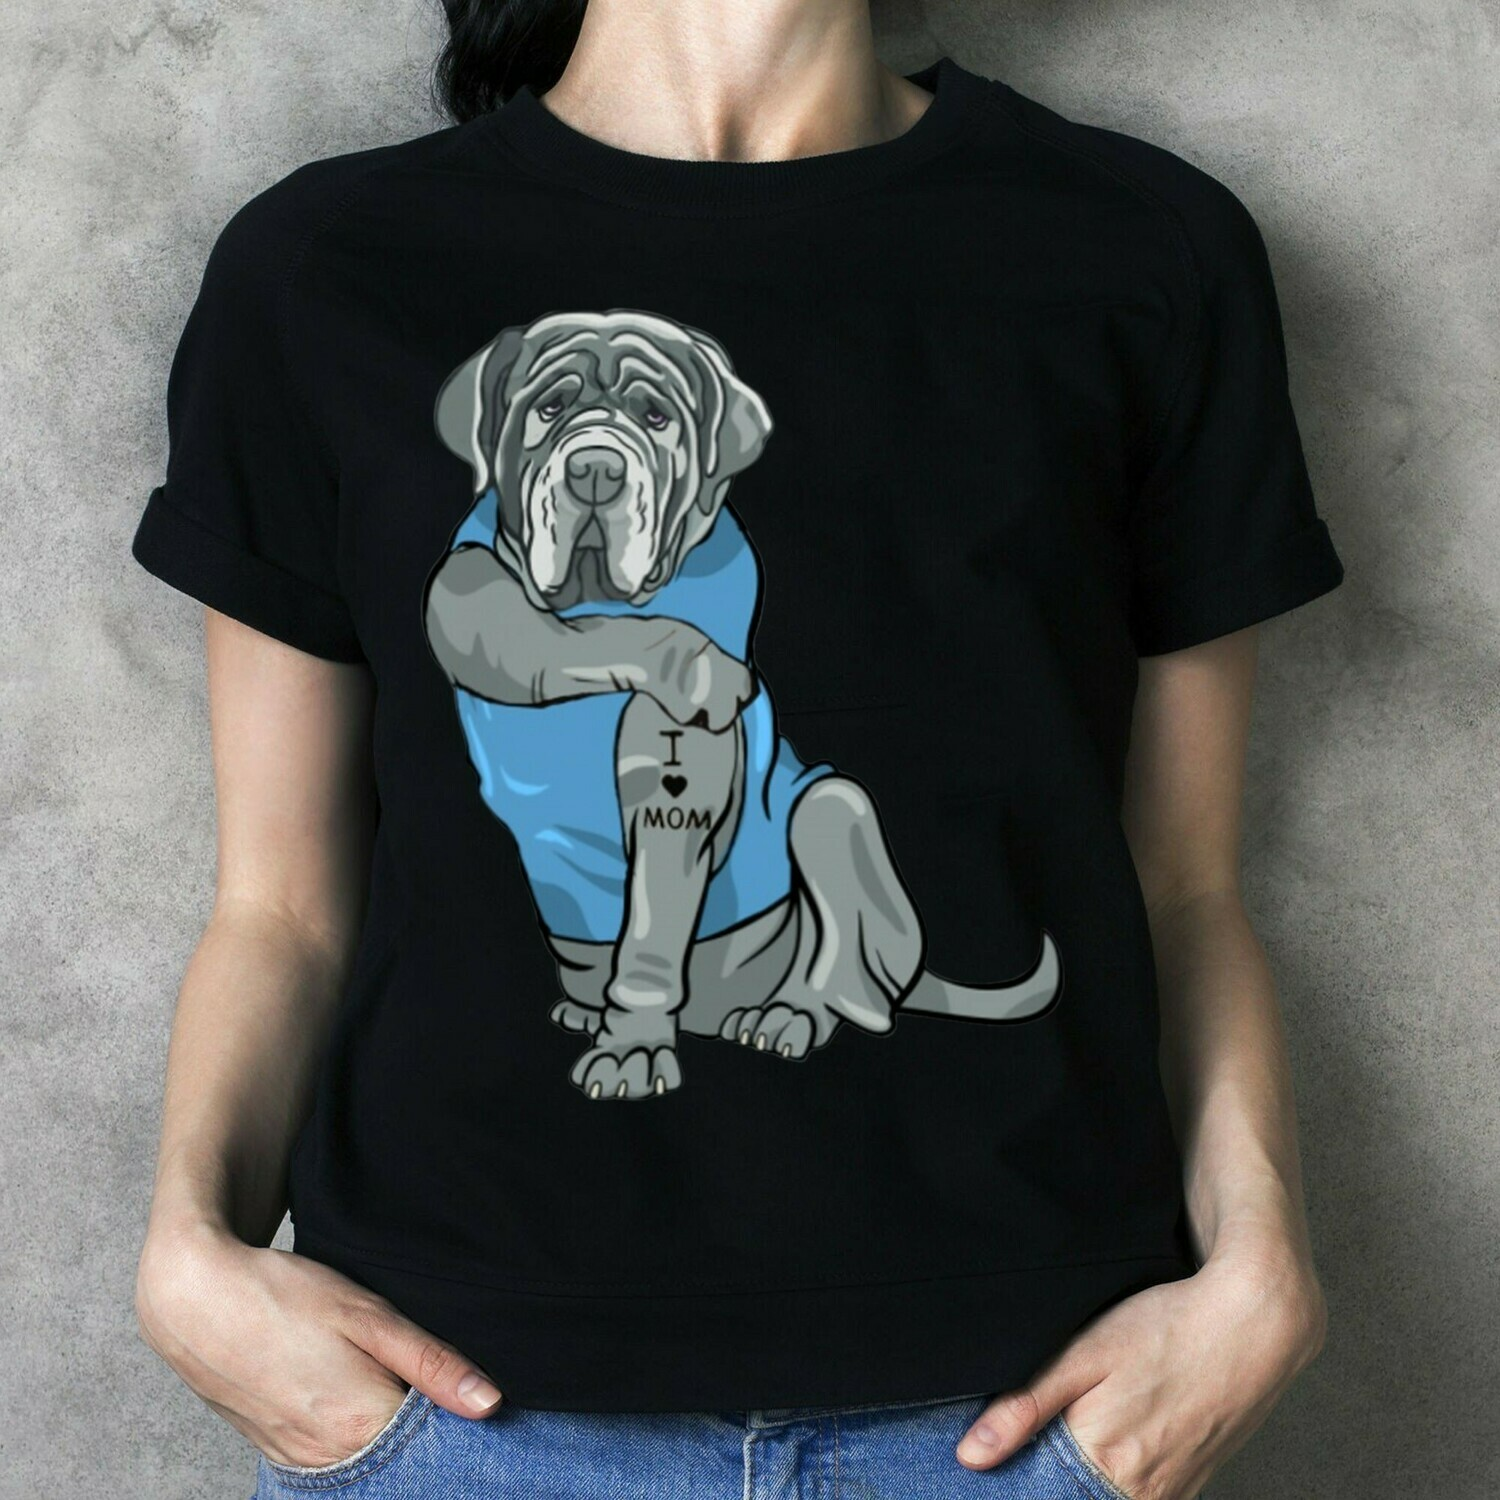 The Biggest Dogs Breed Black Tattoos I Love Mom sitting Thick Thighs  T-Shirt Hoodie Sweatshirt Sweater Tee Kids Youth Gifts Jolly Family Gifts